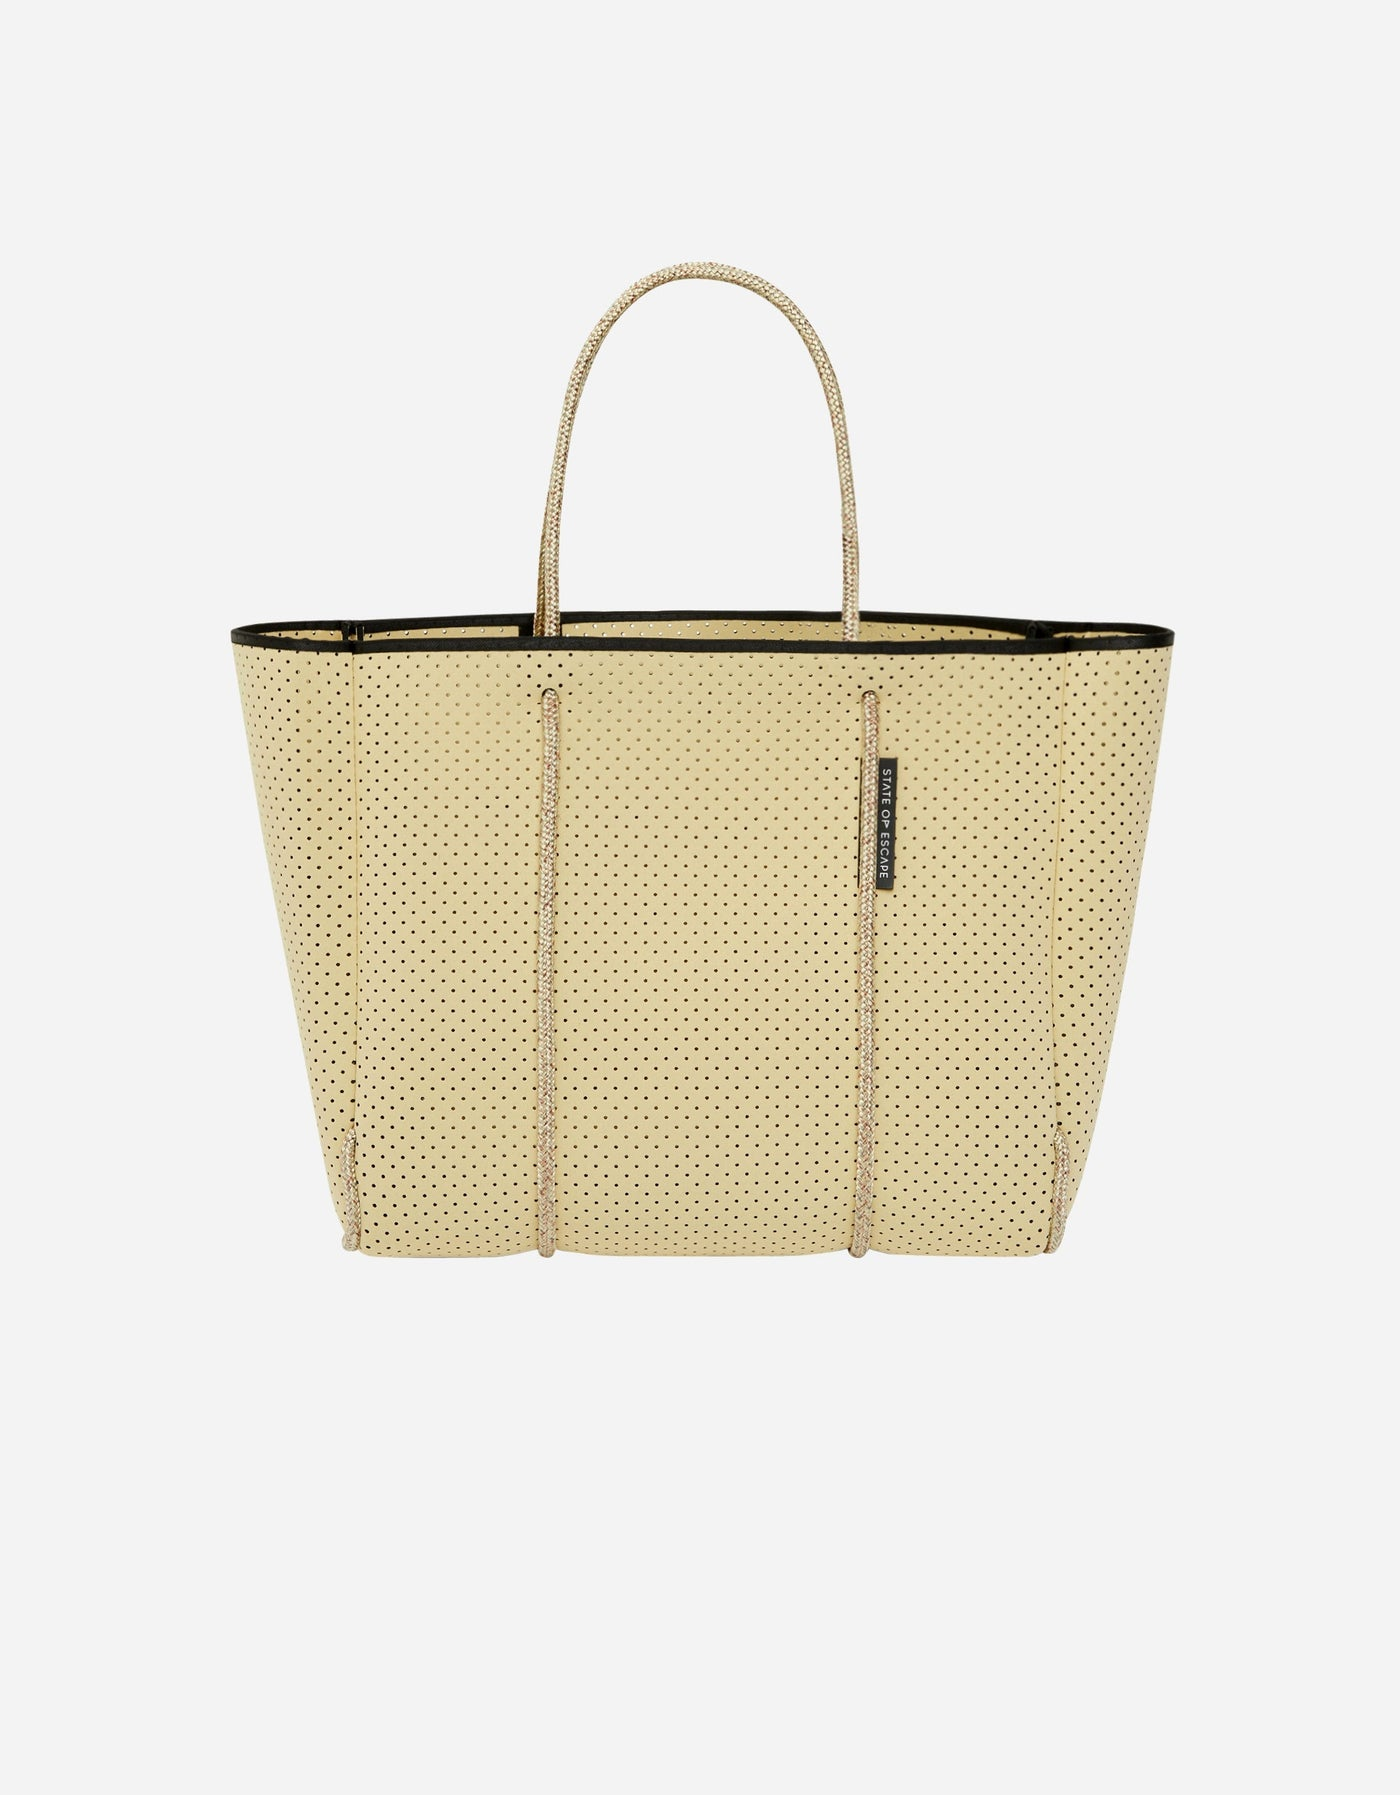 Flying solo tote in buttermilk